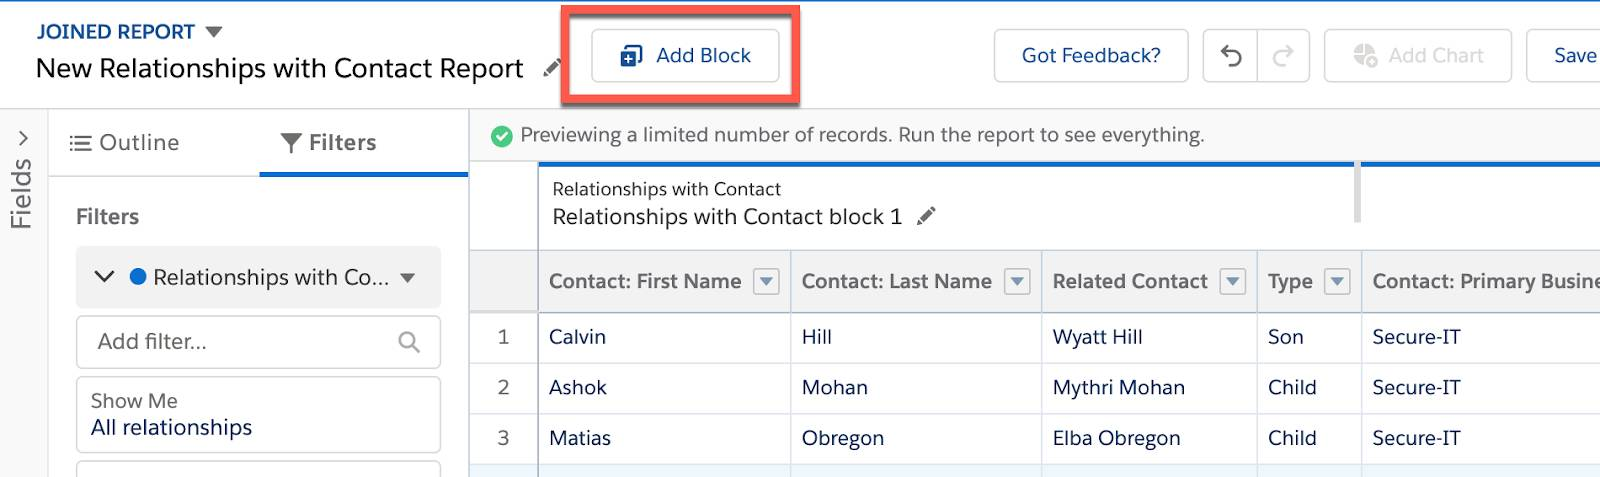 Click Add Block in the joined report preview.